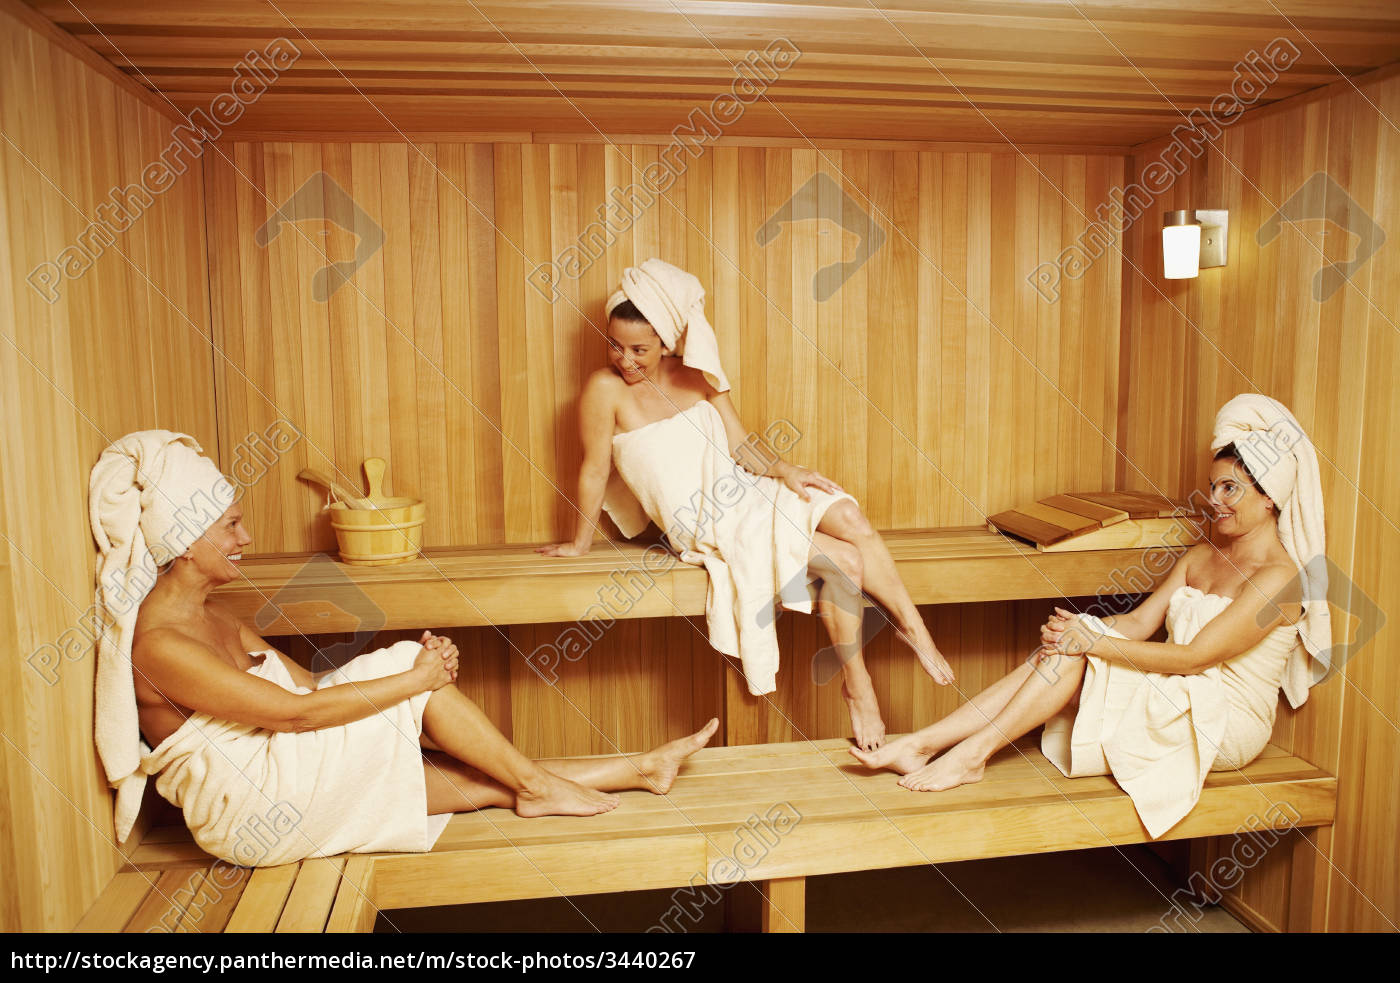 drei reife frauen mit handt chern sitzen in der sauna lizenzfreies bild 3440267. Black Bedroom Furniture Sets. Home Design Ideas